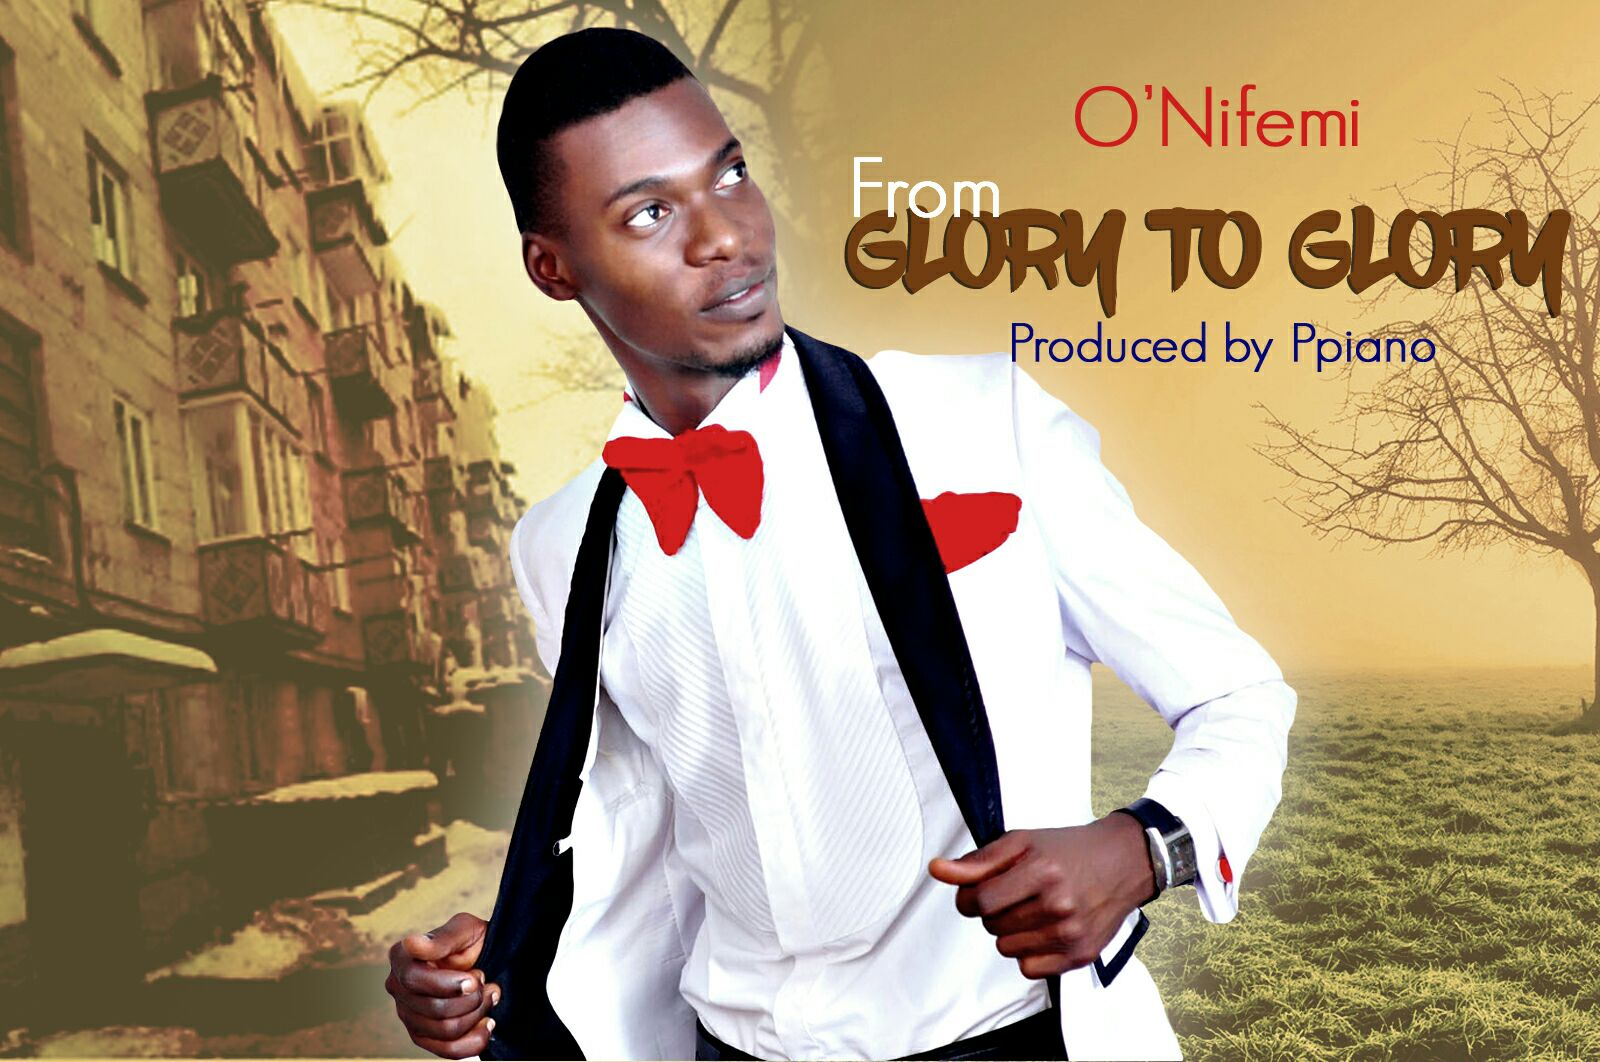 DOWNLOAD Music: O'Nifemi – From Glory To Glory (Prod. By Ppiano)